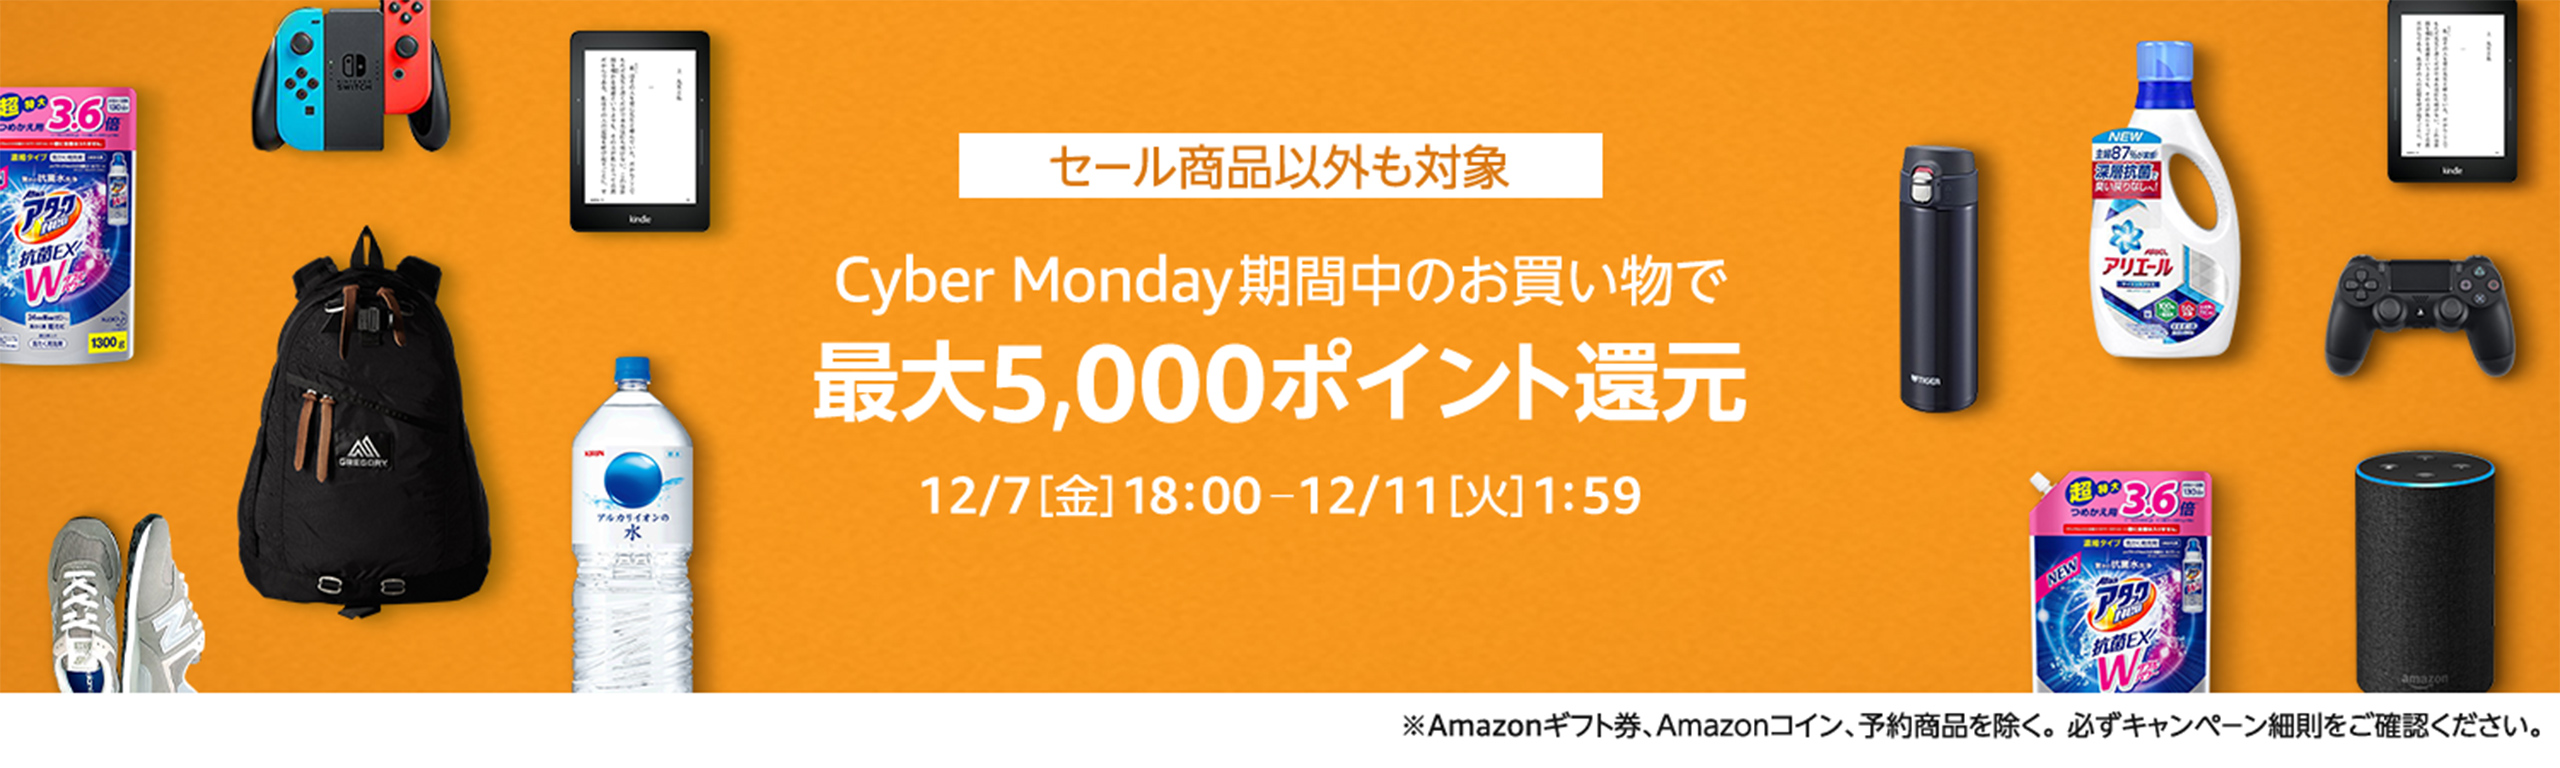 https://m.media-amazon.com/images/G/09/2018/x-site/cyber_monday/point/LU_PU_0001_2_dt.jpg